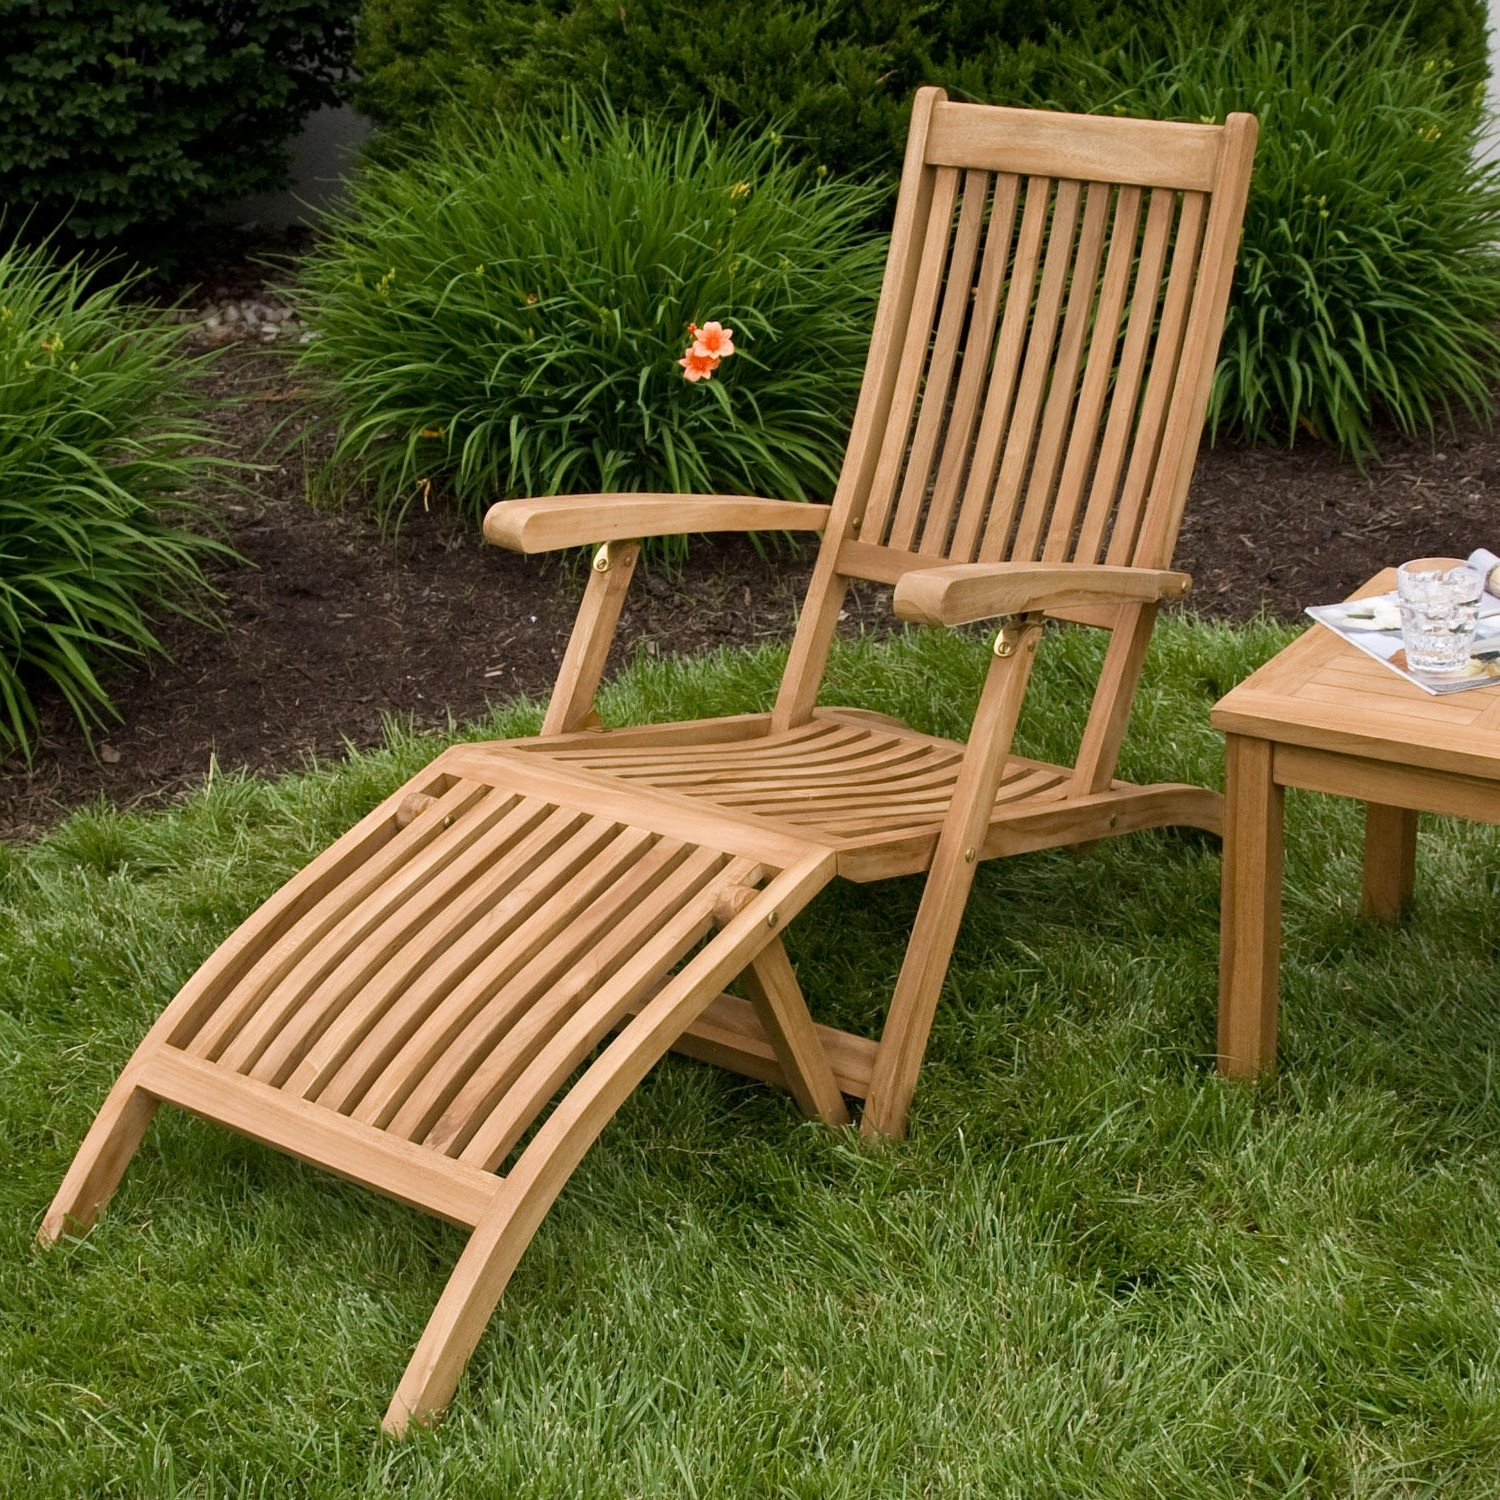 Signature Hardware Within Foldable Chaise Lounge Outdoor Chairs (View 14 of 15)